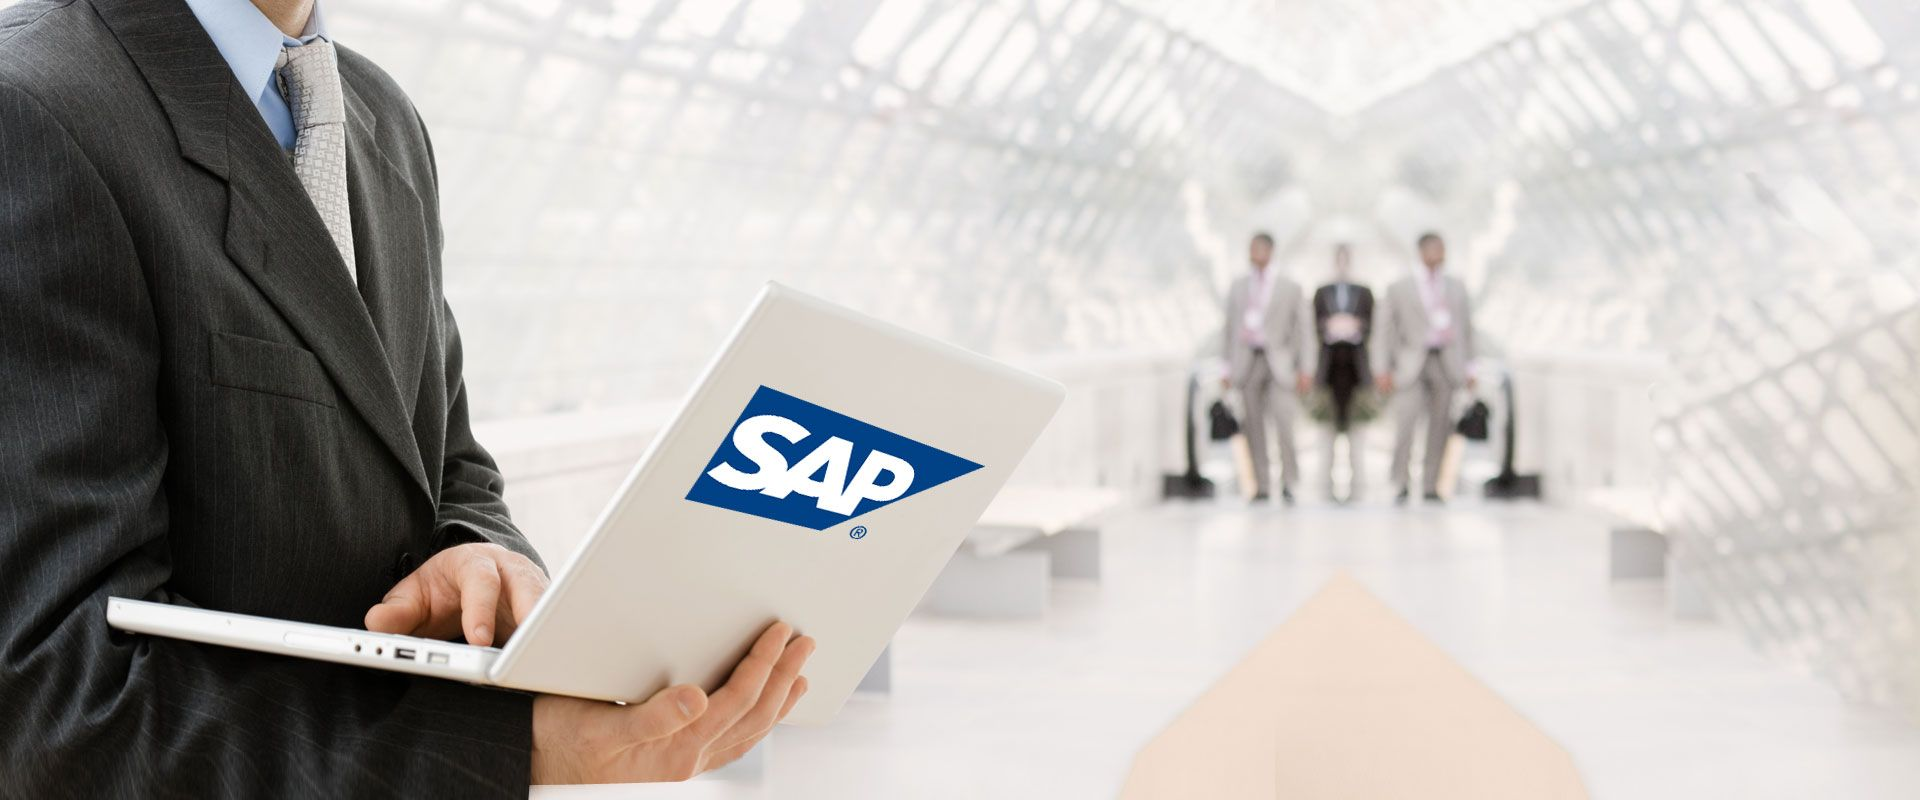 SAP consulting Services Company in Houston | Austin | Dallas | San Antonio